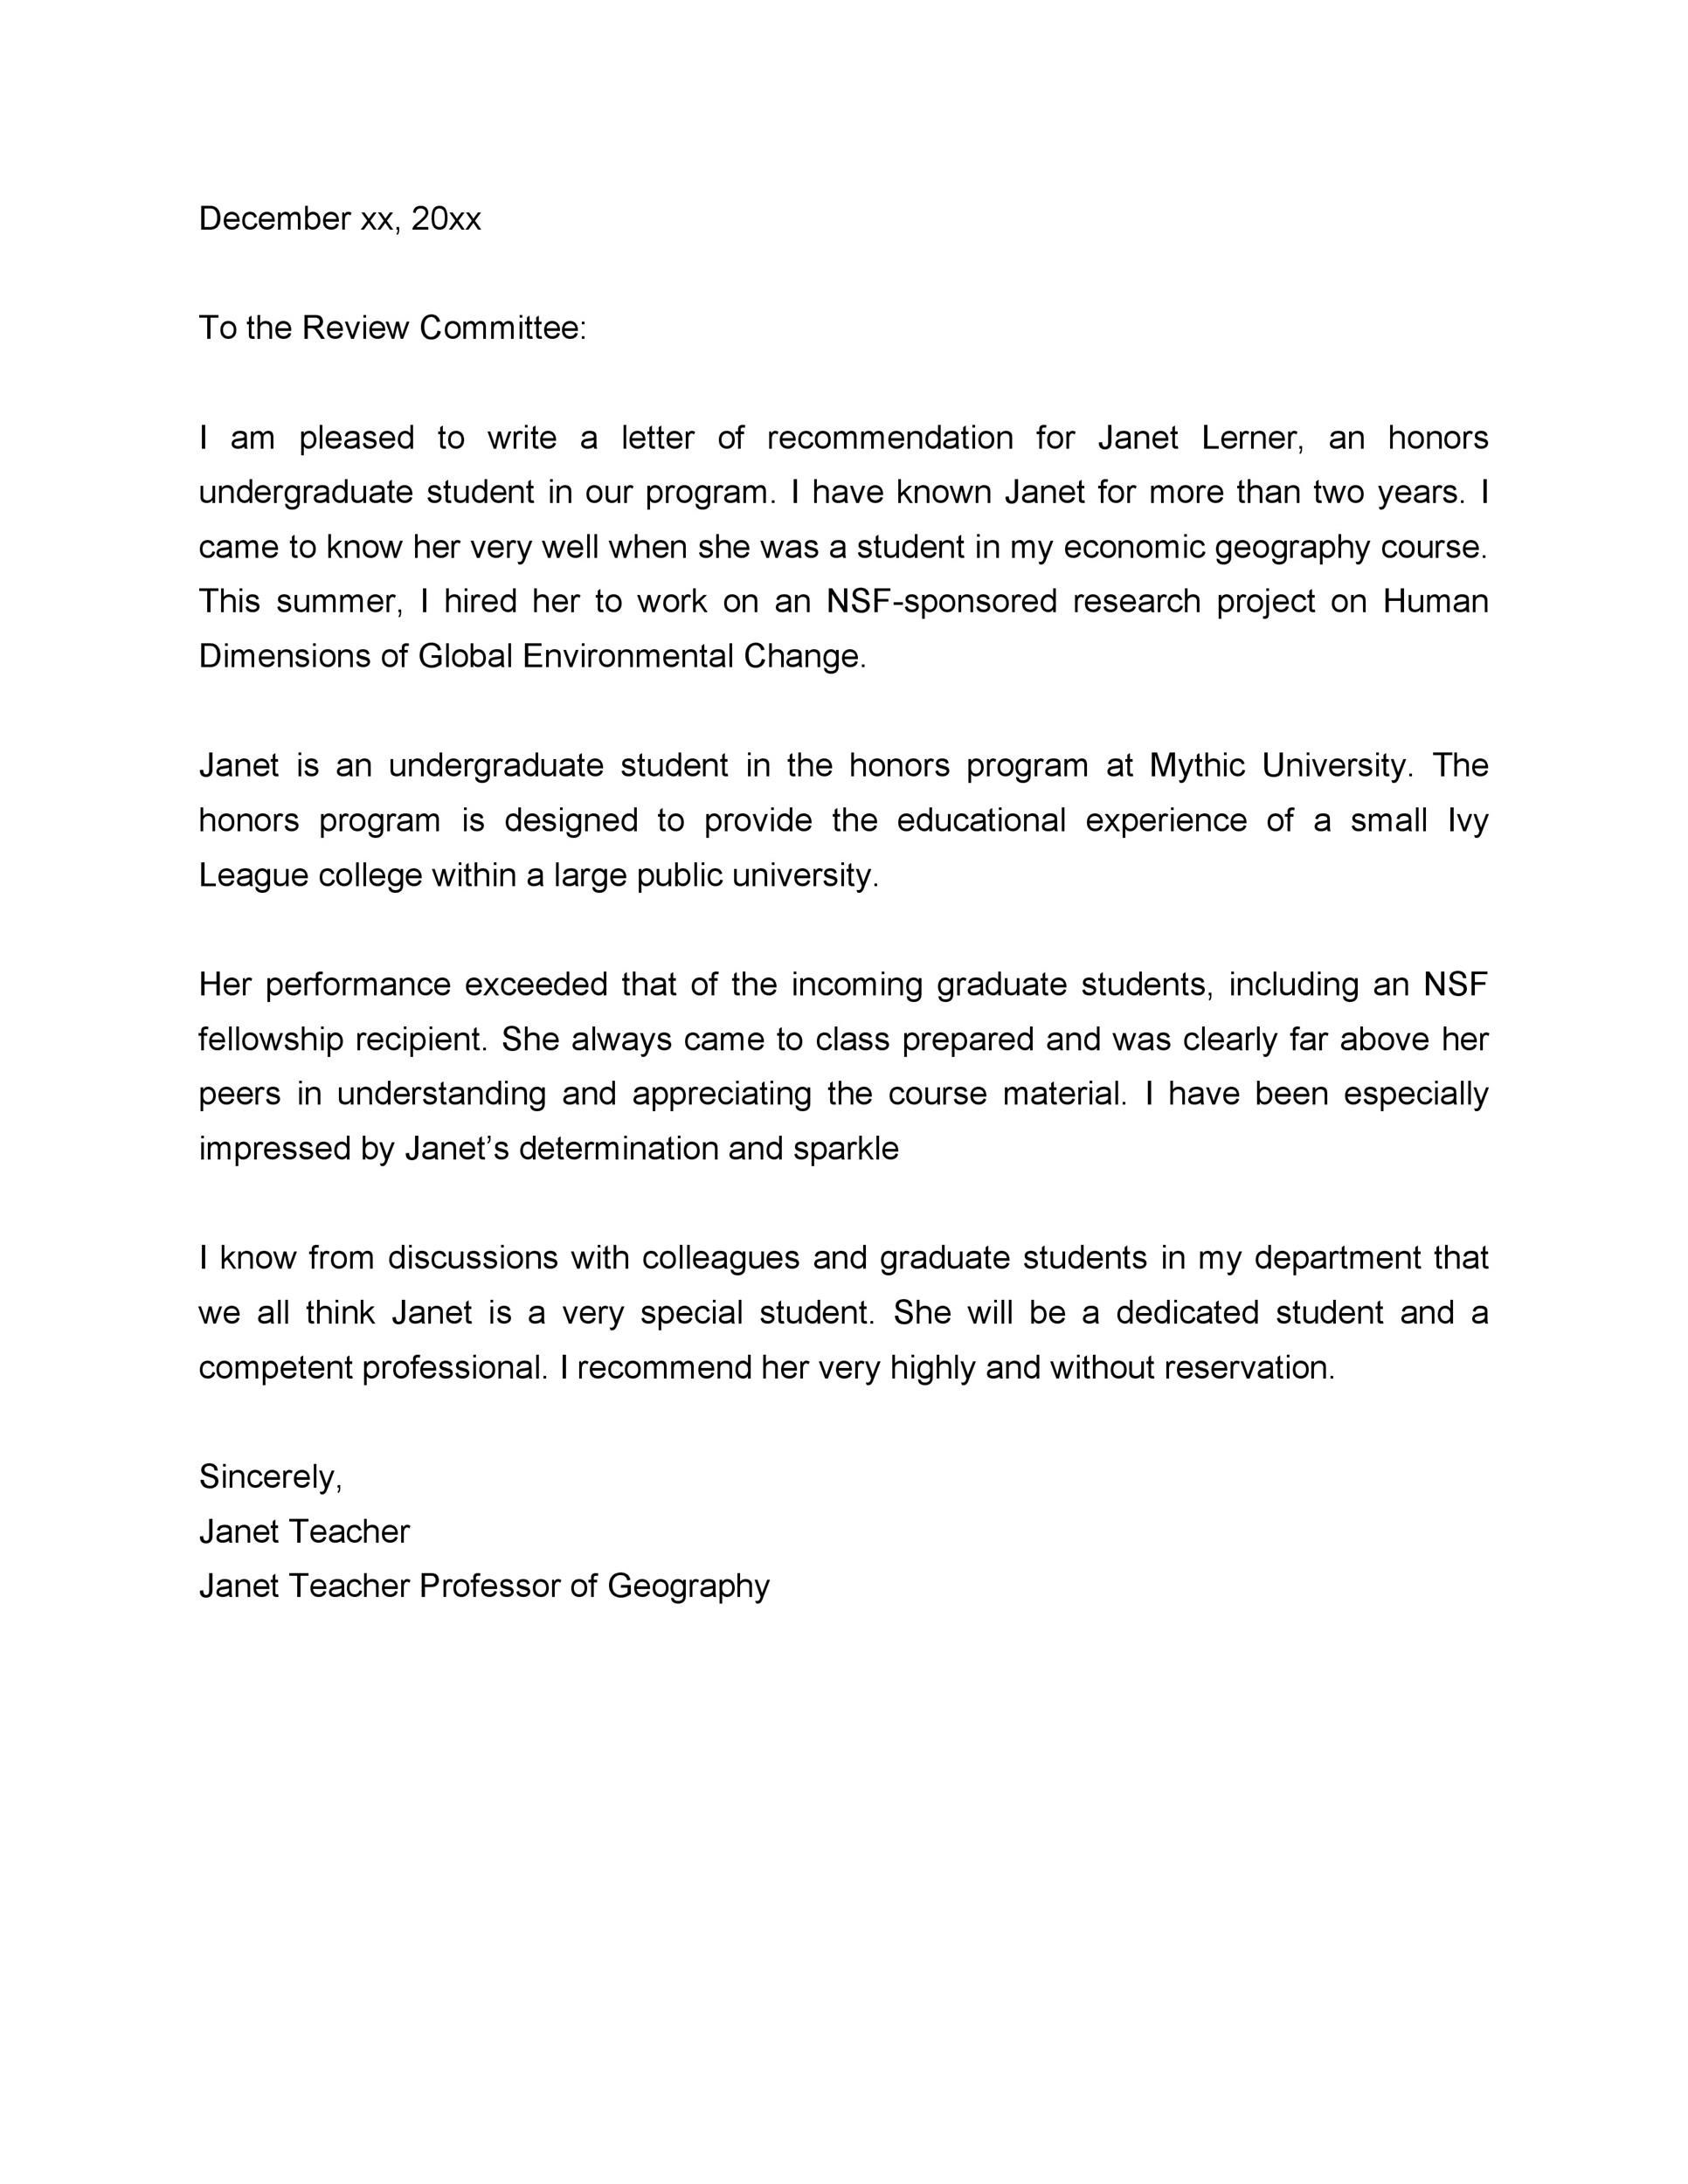 008 Stirring Letter Of Recommendation Template For College Student Image  Sample From ProfessorFull